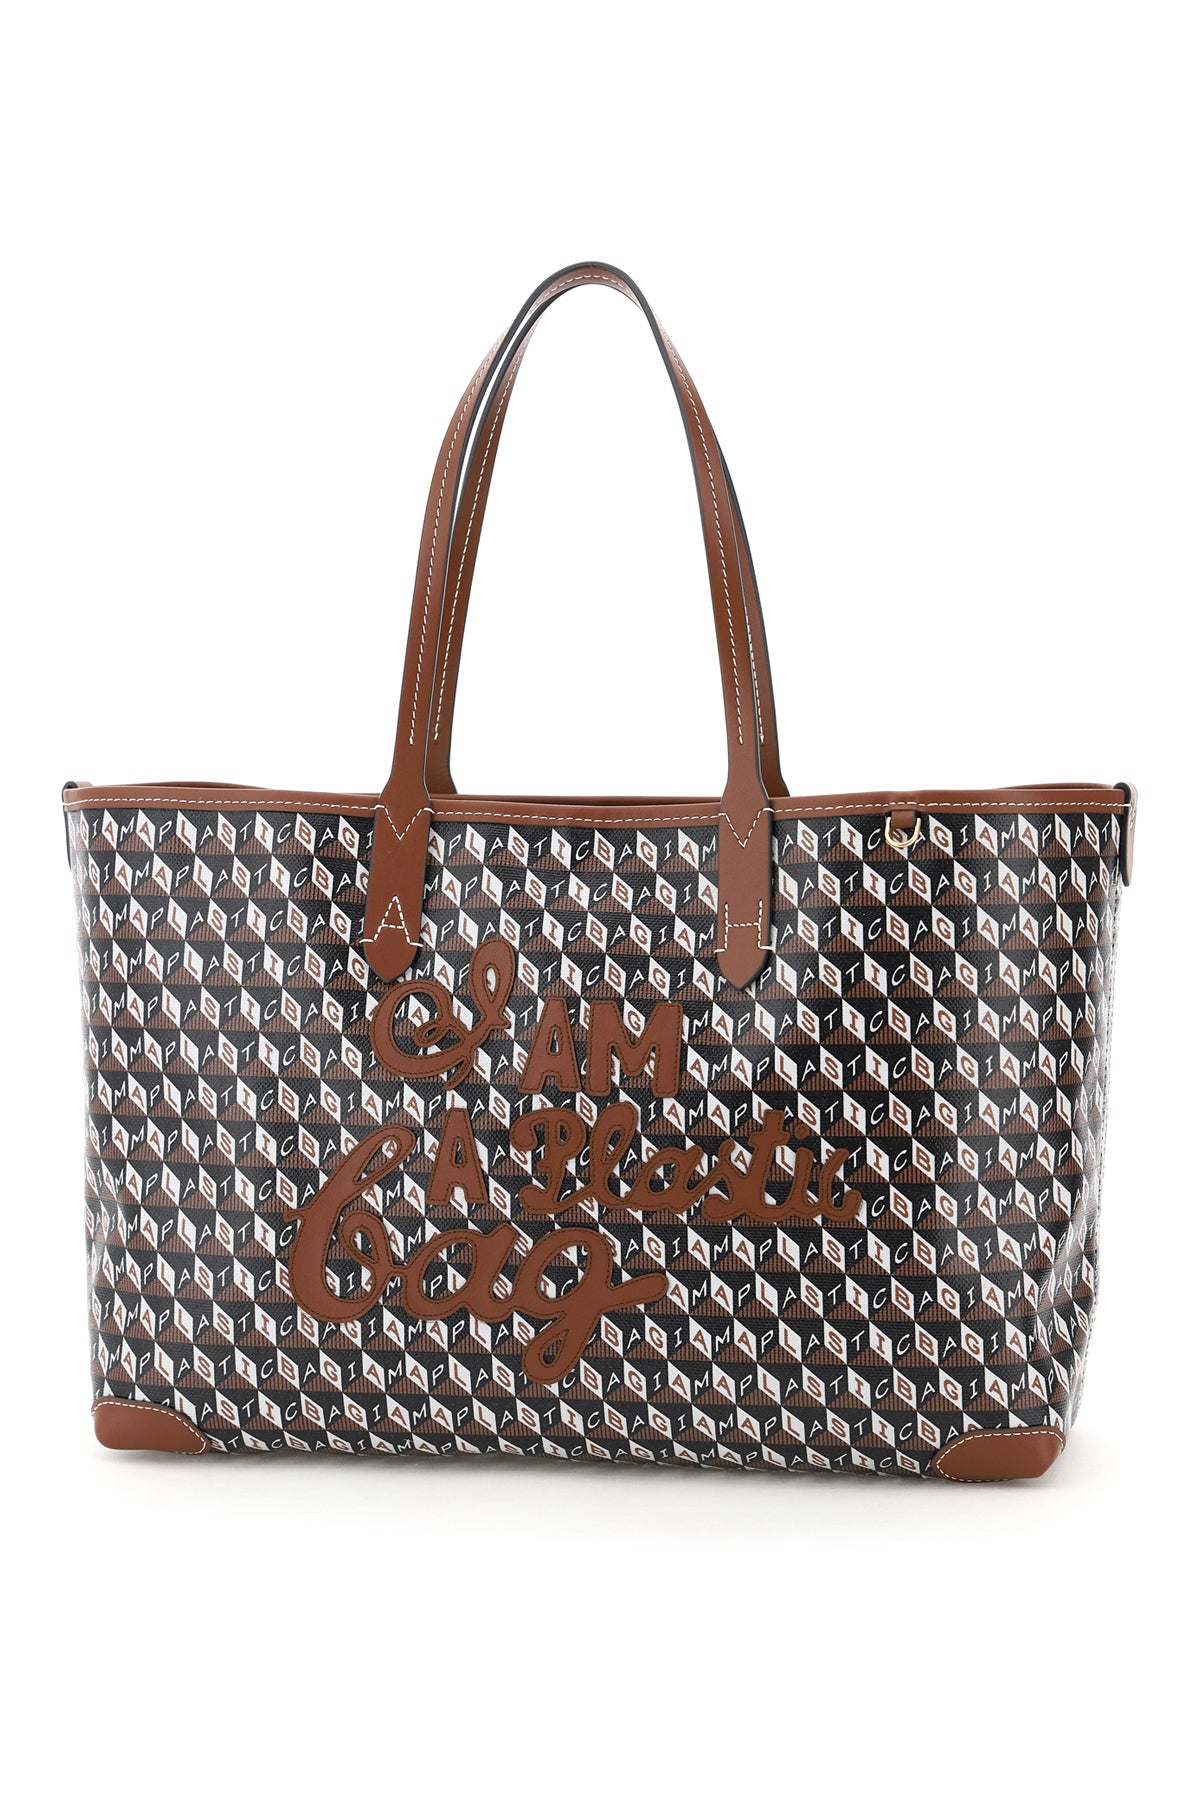 Anya Hindmarch ANYA HINDMARCH I AM A PLASTIC BAG TOTE BAG